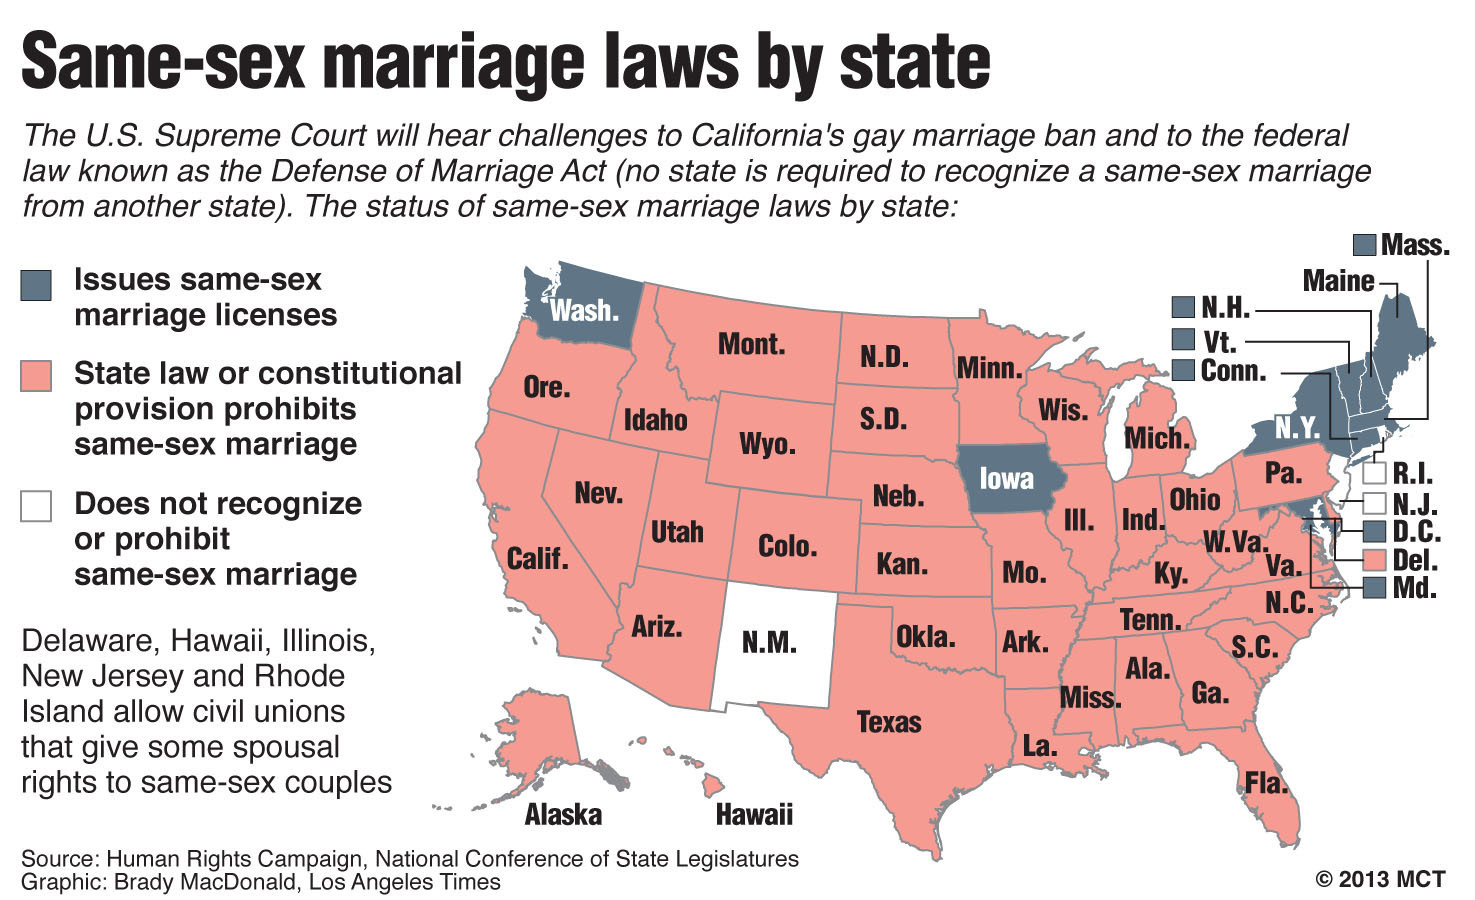 Graphic: Same- marriage laws by state - Chicago Tribune on addiction map, birth control map, 9gag map, family interaction map, life calling map, modernism map, new moon map, inbreeding map, food issues map, lawyers map, doctrine map, long trip map, metaphysical map, stages of life map, sovereignty map, numerology map, heredity map, love wins map, middle class map,